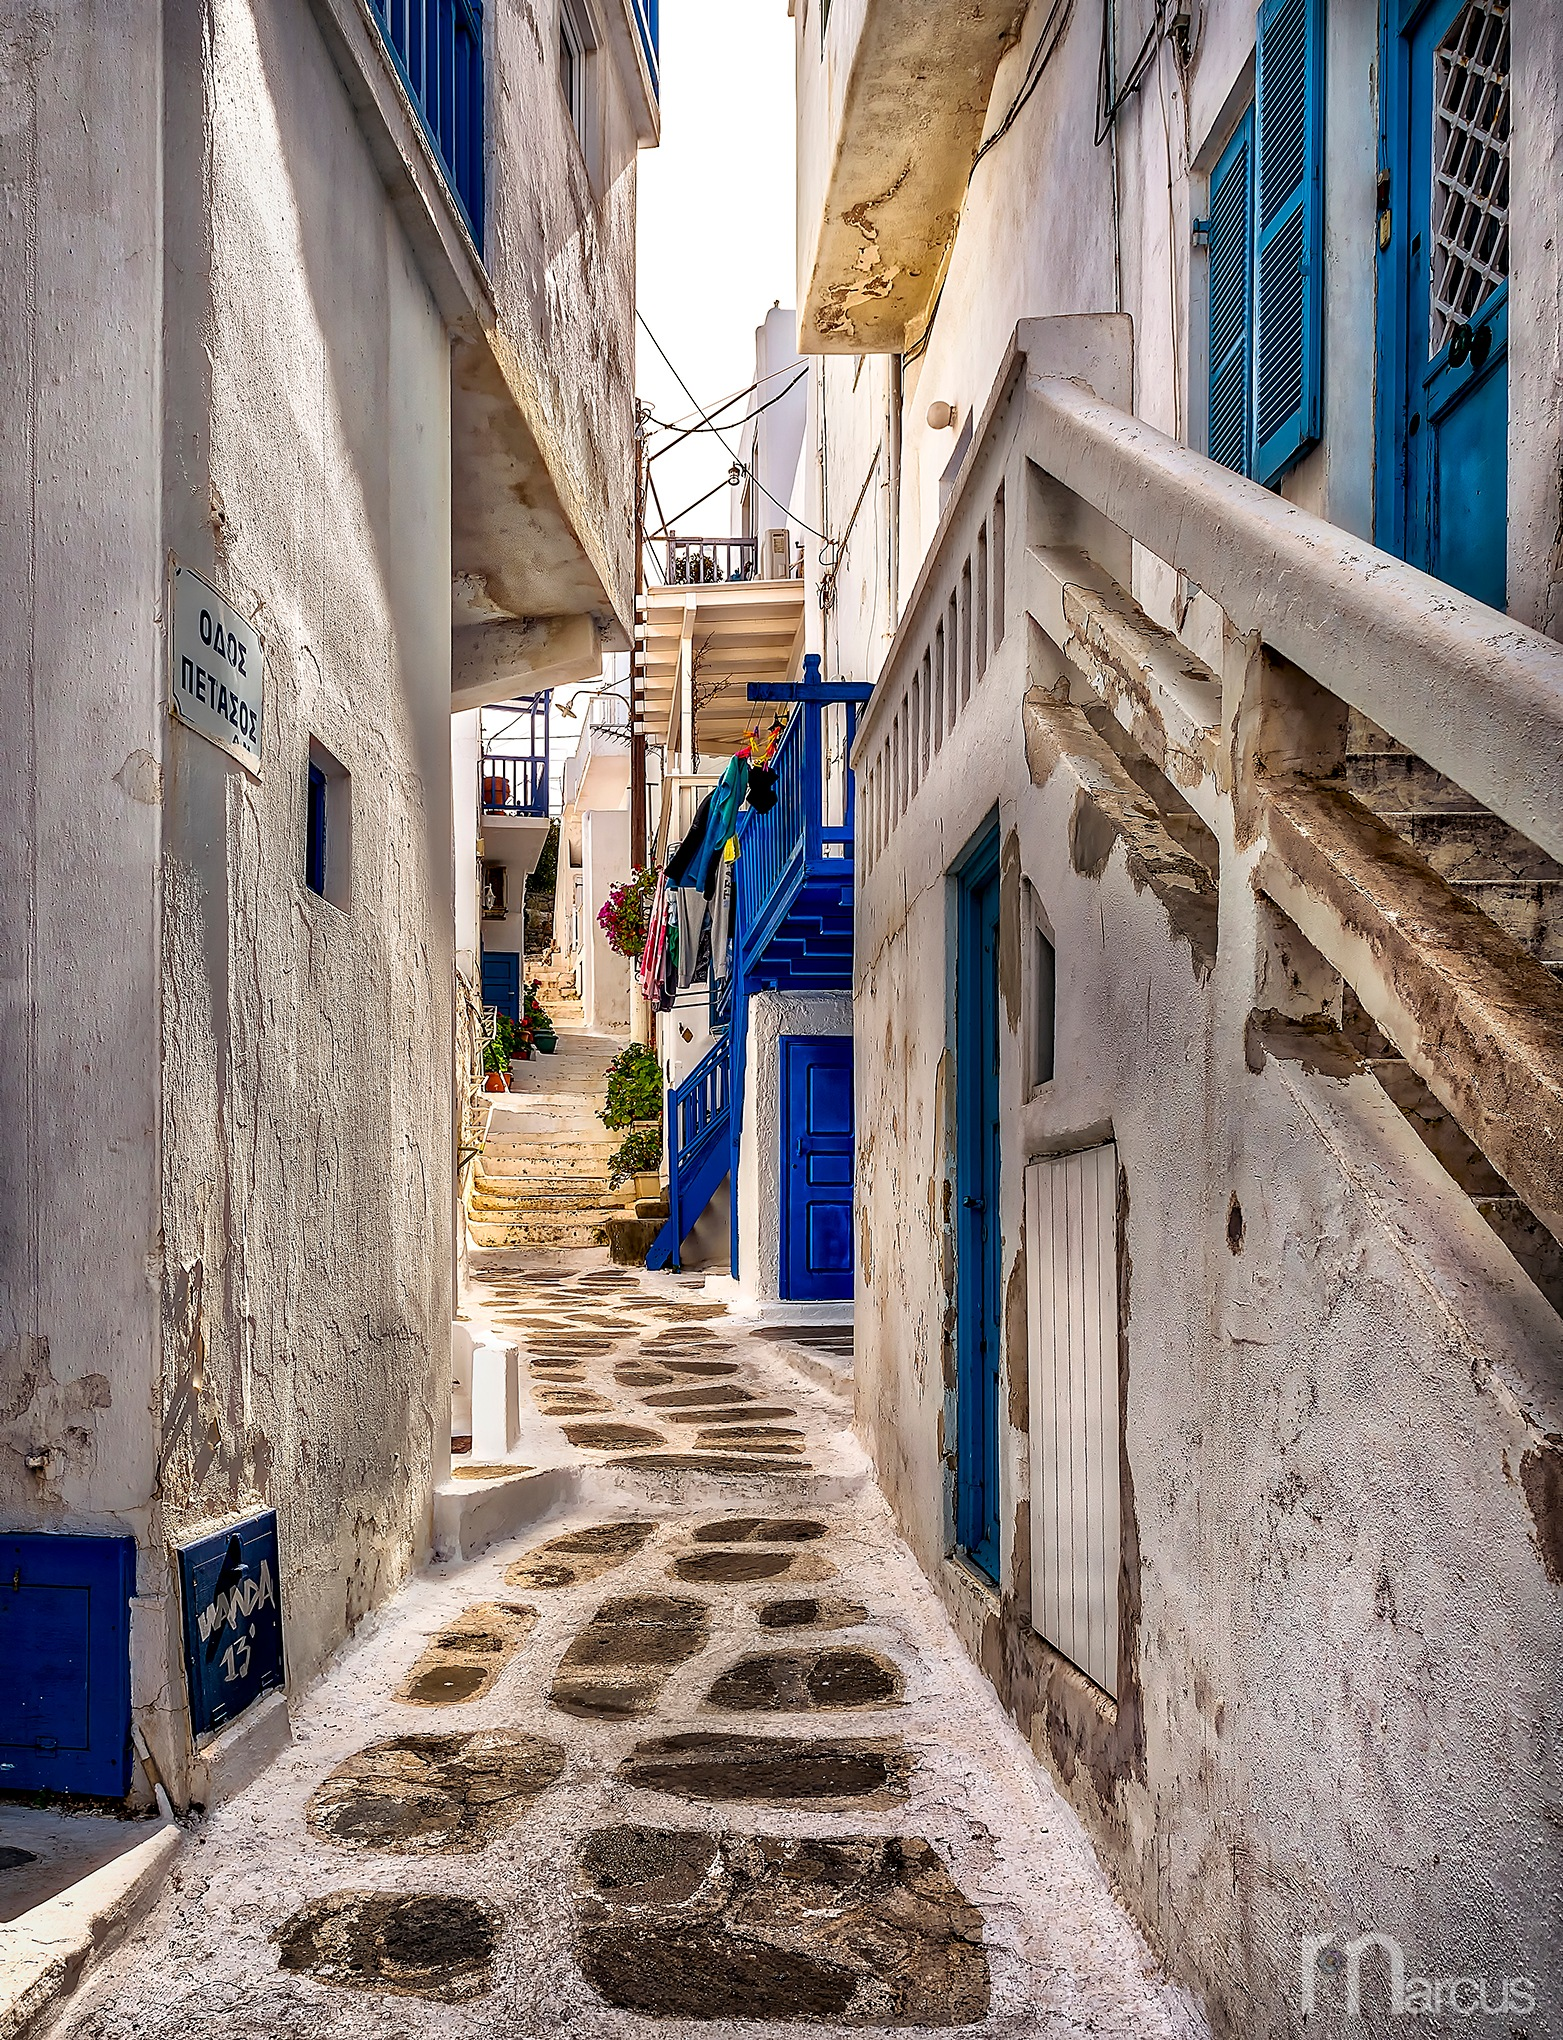 Backstreets by Richard Marcus